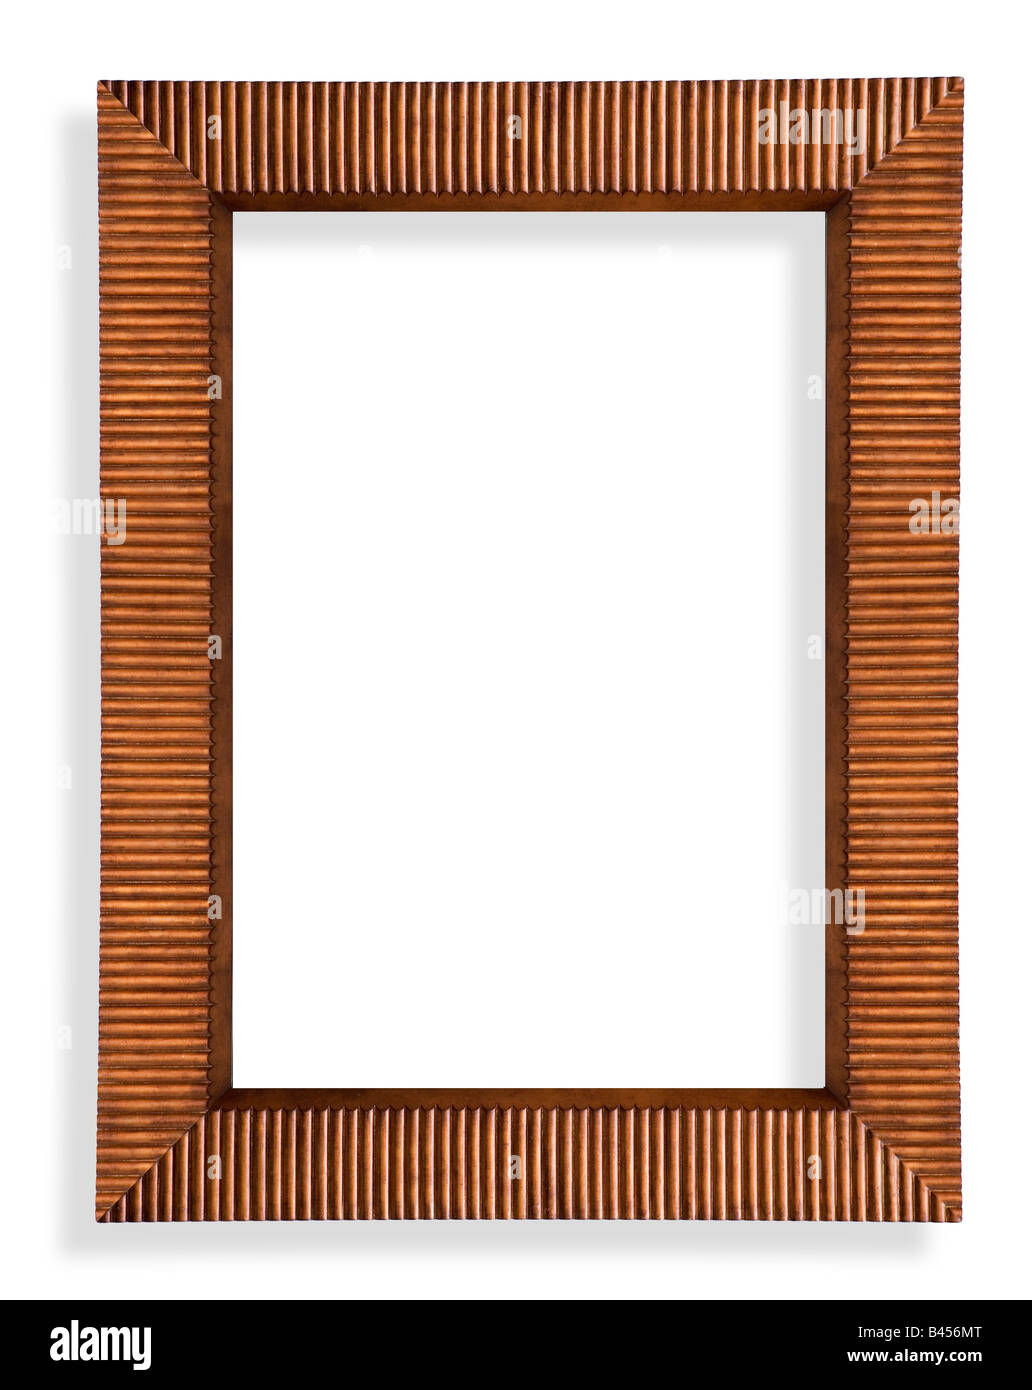 Wooden Picture Frames Picture Frame Stock Photos & Wooden Picture ...